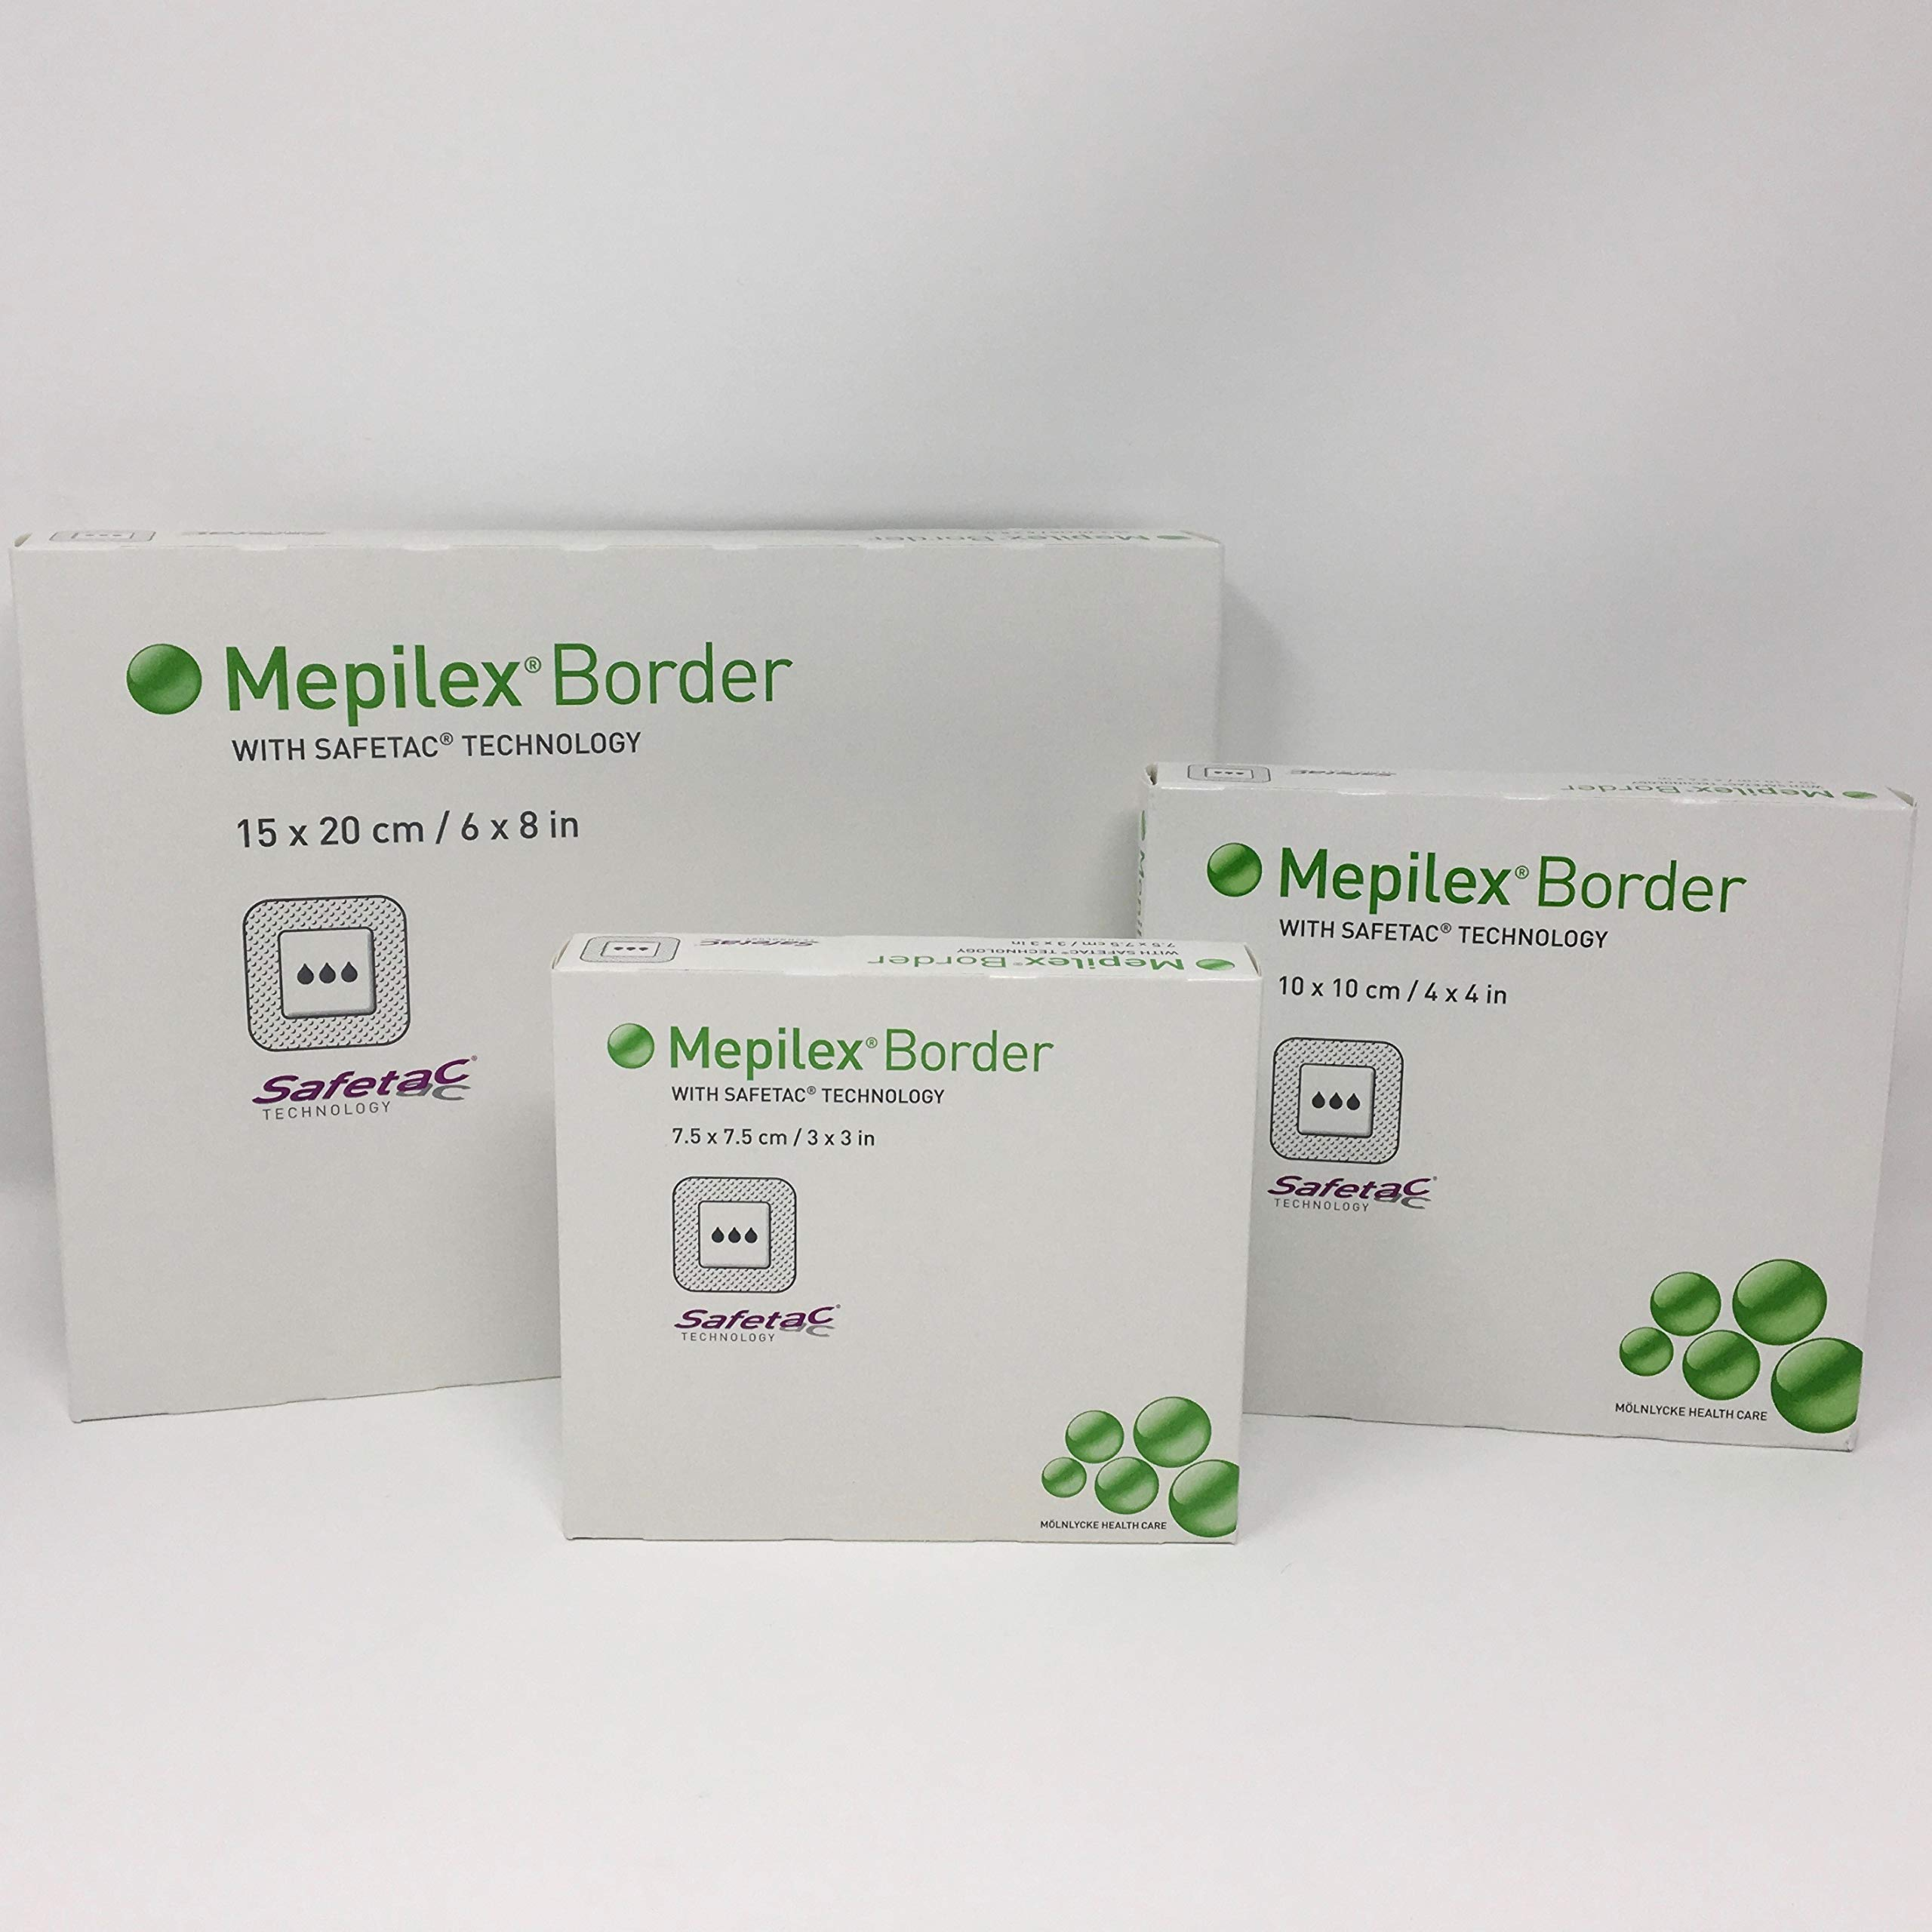 Mepilex Border Wound Dressing Bundle (Contains 3 Boxes of Dressings - 1 Box of 5 Dressings Each of: 3'' x 3'' - 4'' x 4'' - 6'' x 8'') Total of 15 Wound Dressings